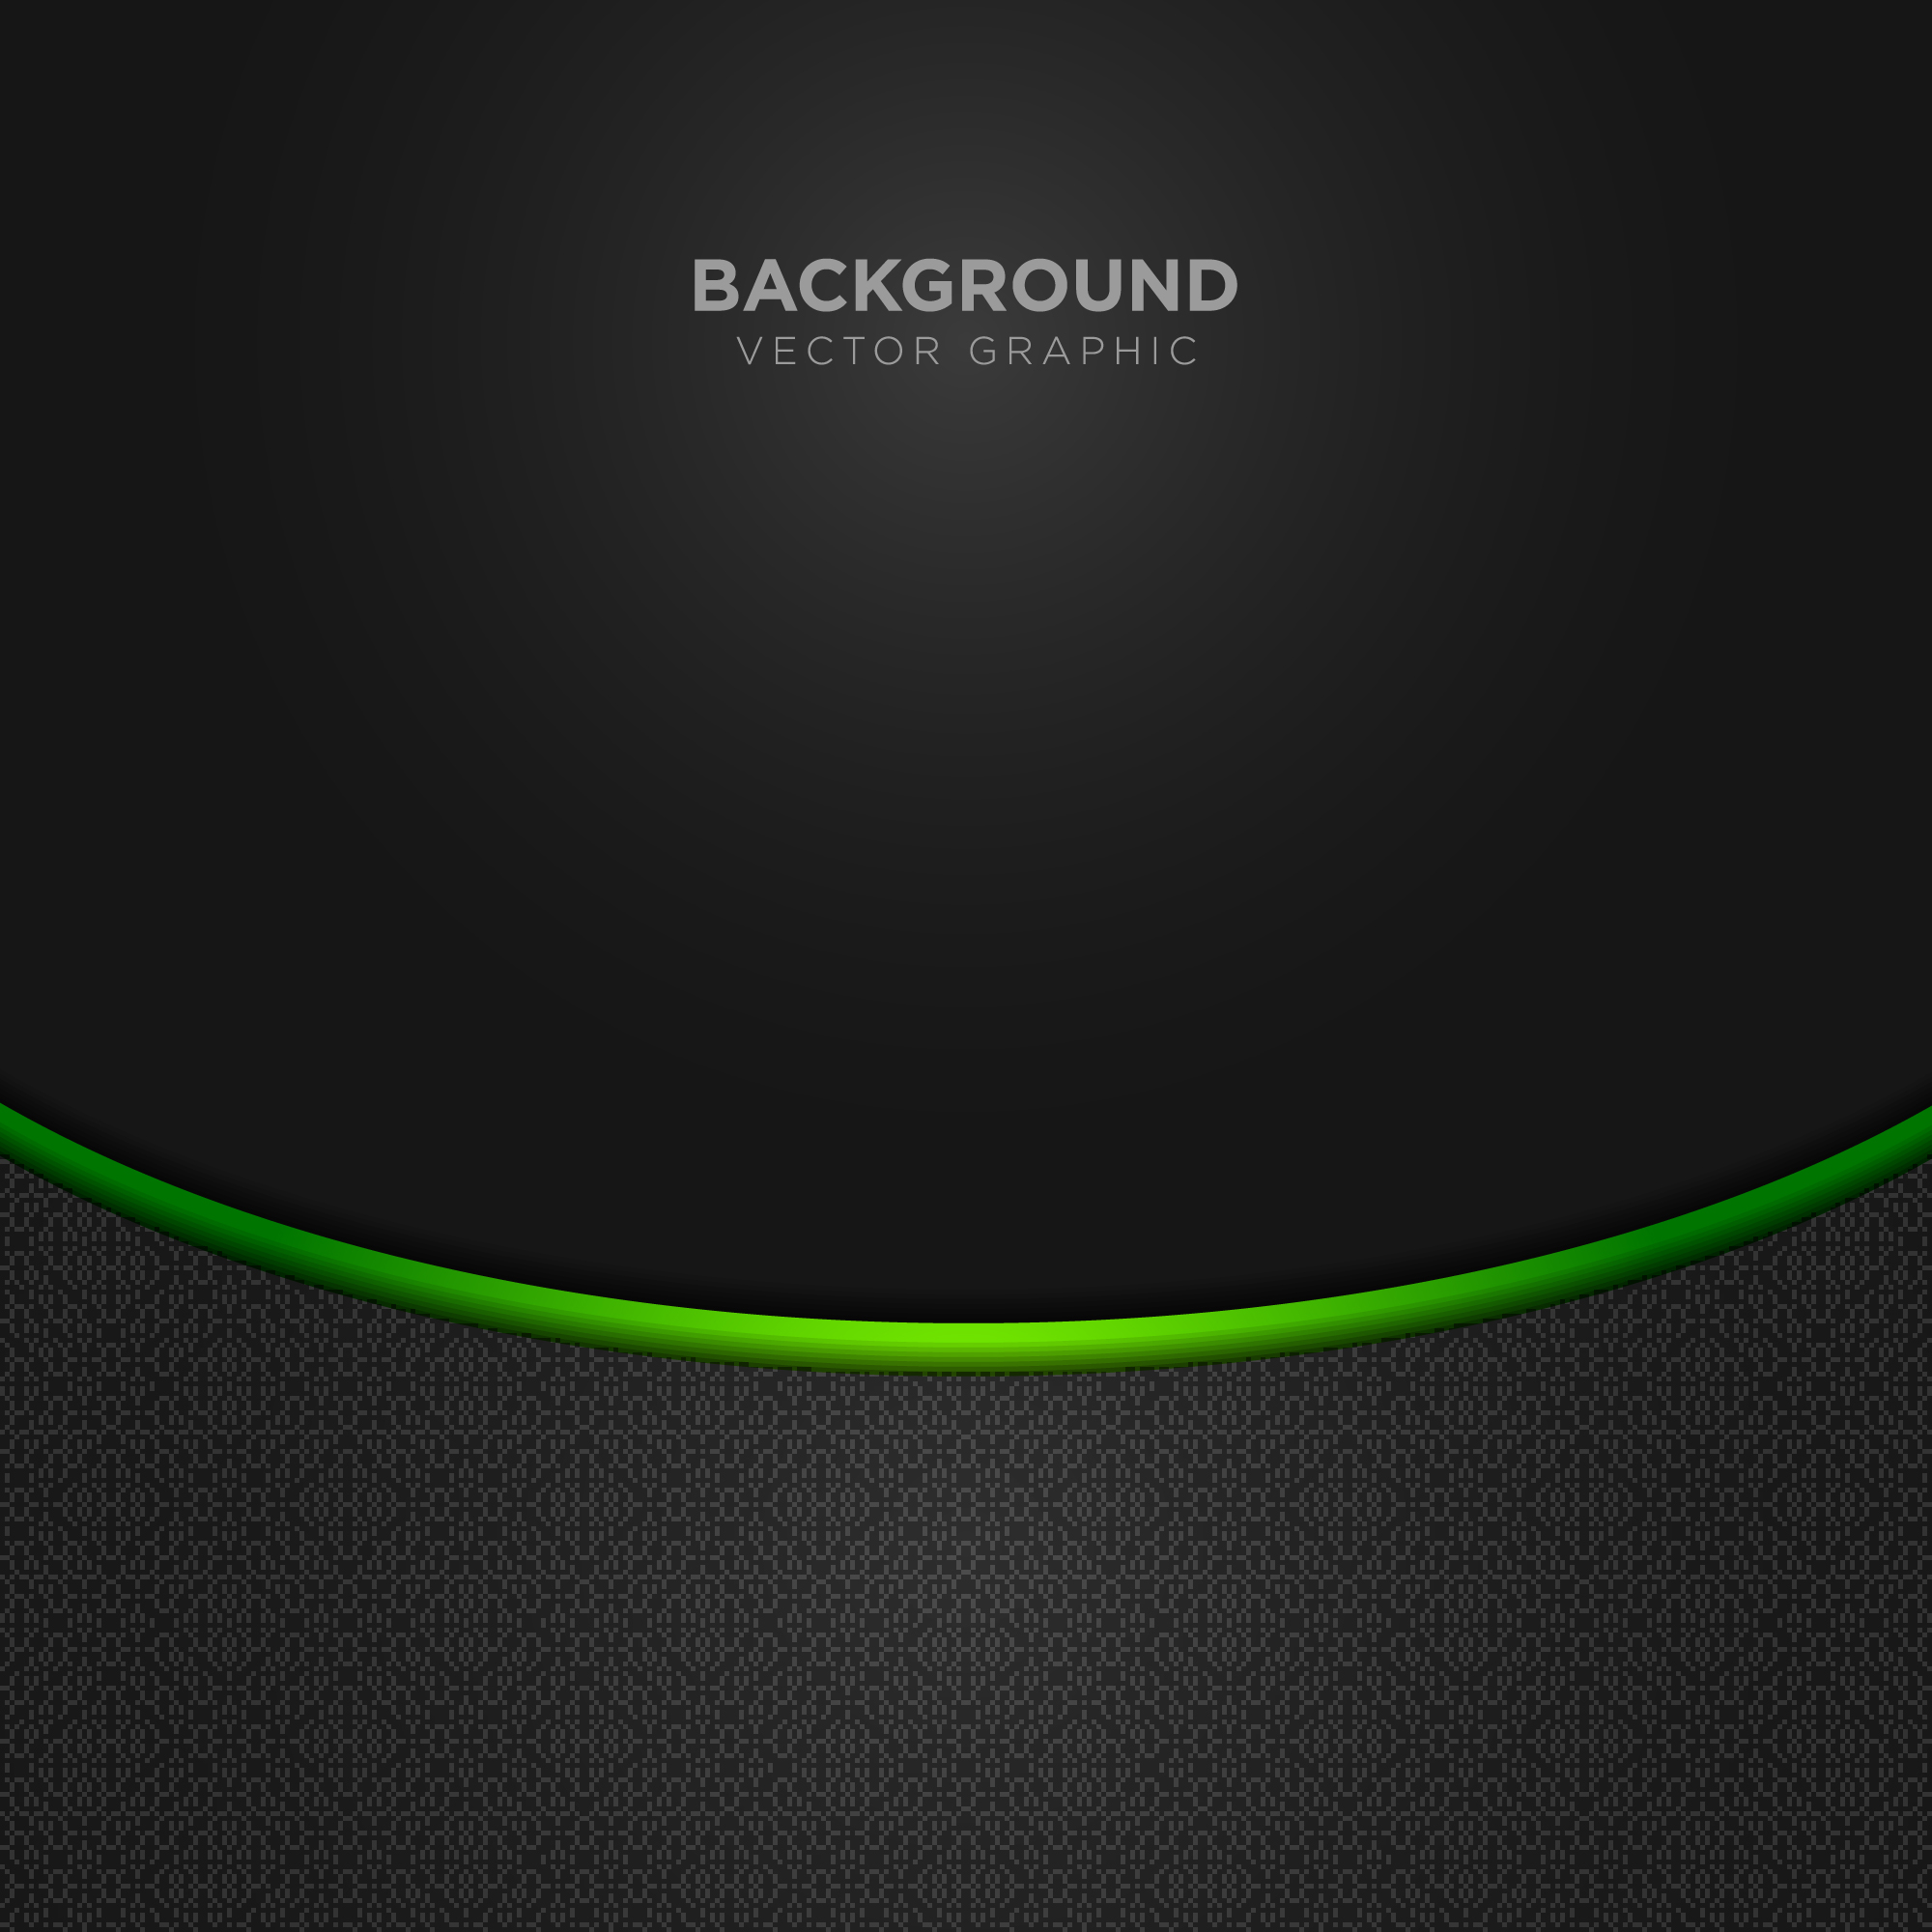 Black background with green details